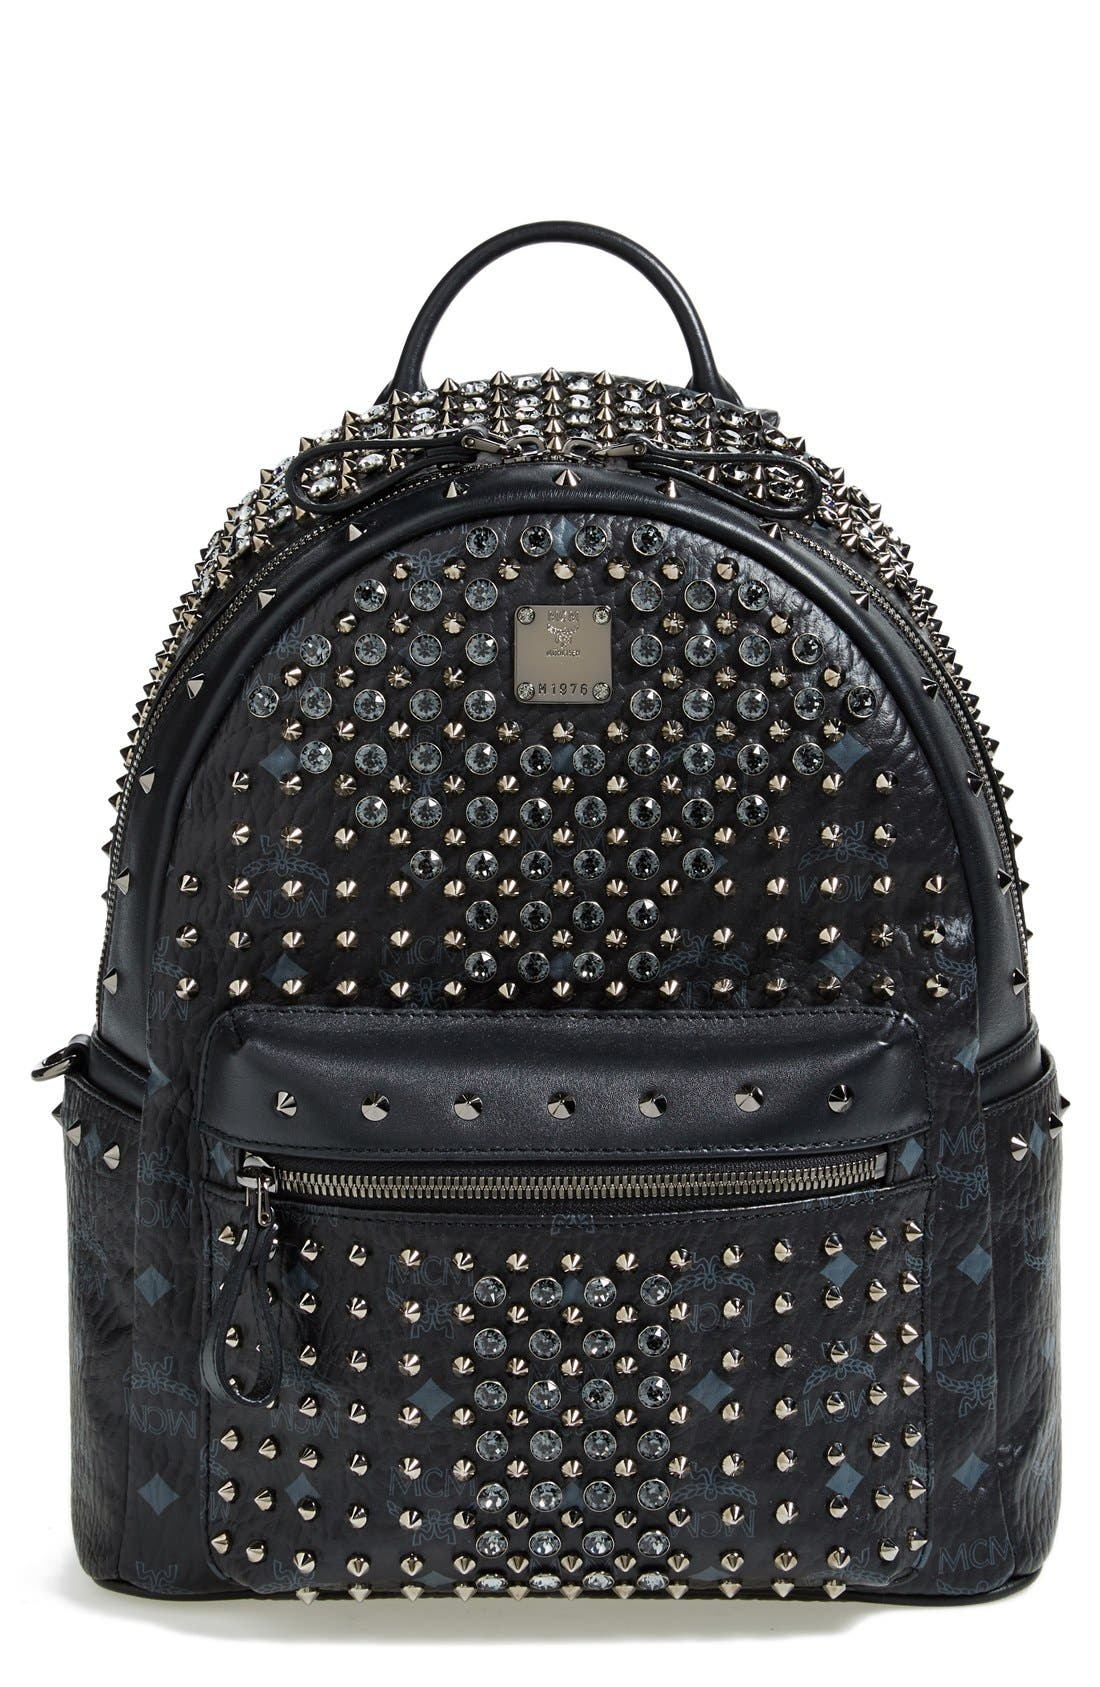 Alternate Image 1 Selected - MCM 'Studded - Small' Coated Canvas Backpack